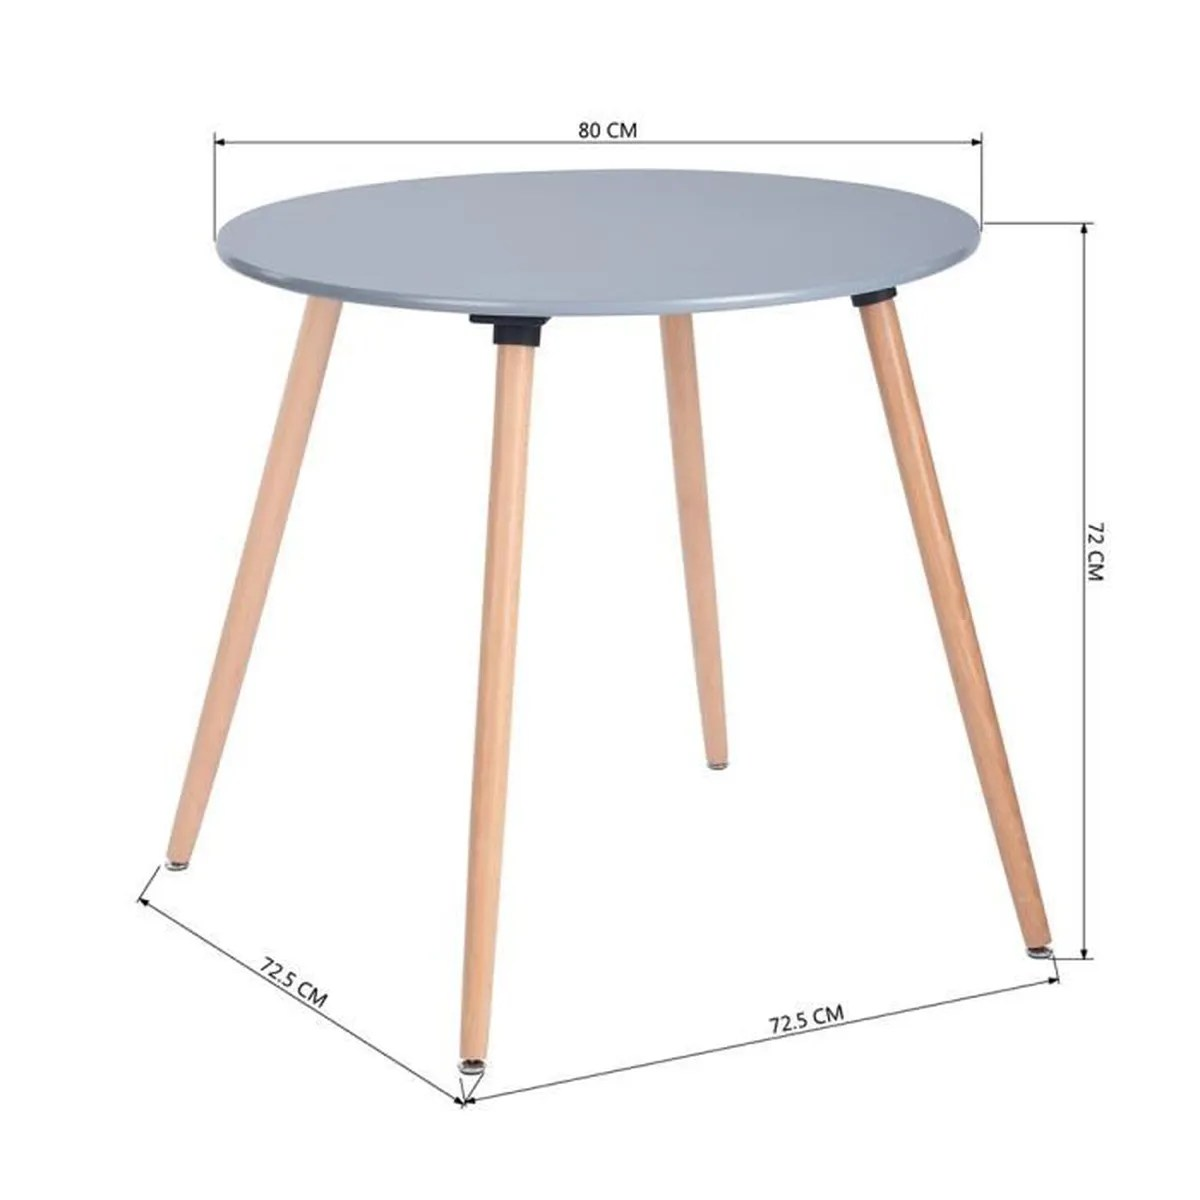 Table Ronde 80 Cm Table à Manger Table De Cuisine Ronde 80cm Table De Salon Table De Travail Pieds En Bois Pour Maison Gris